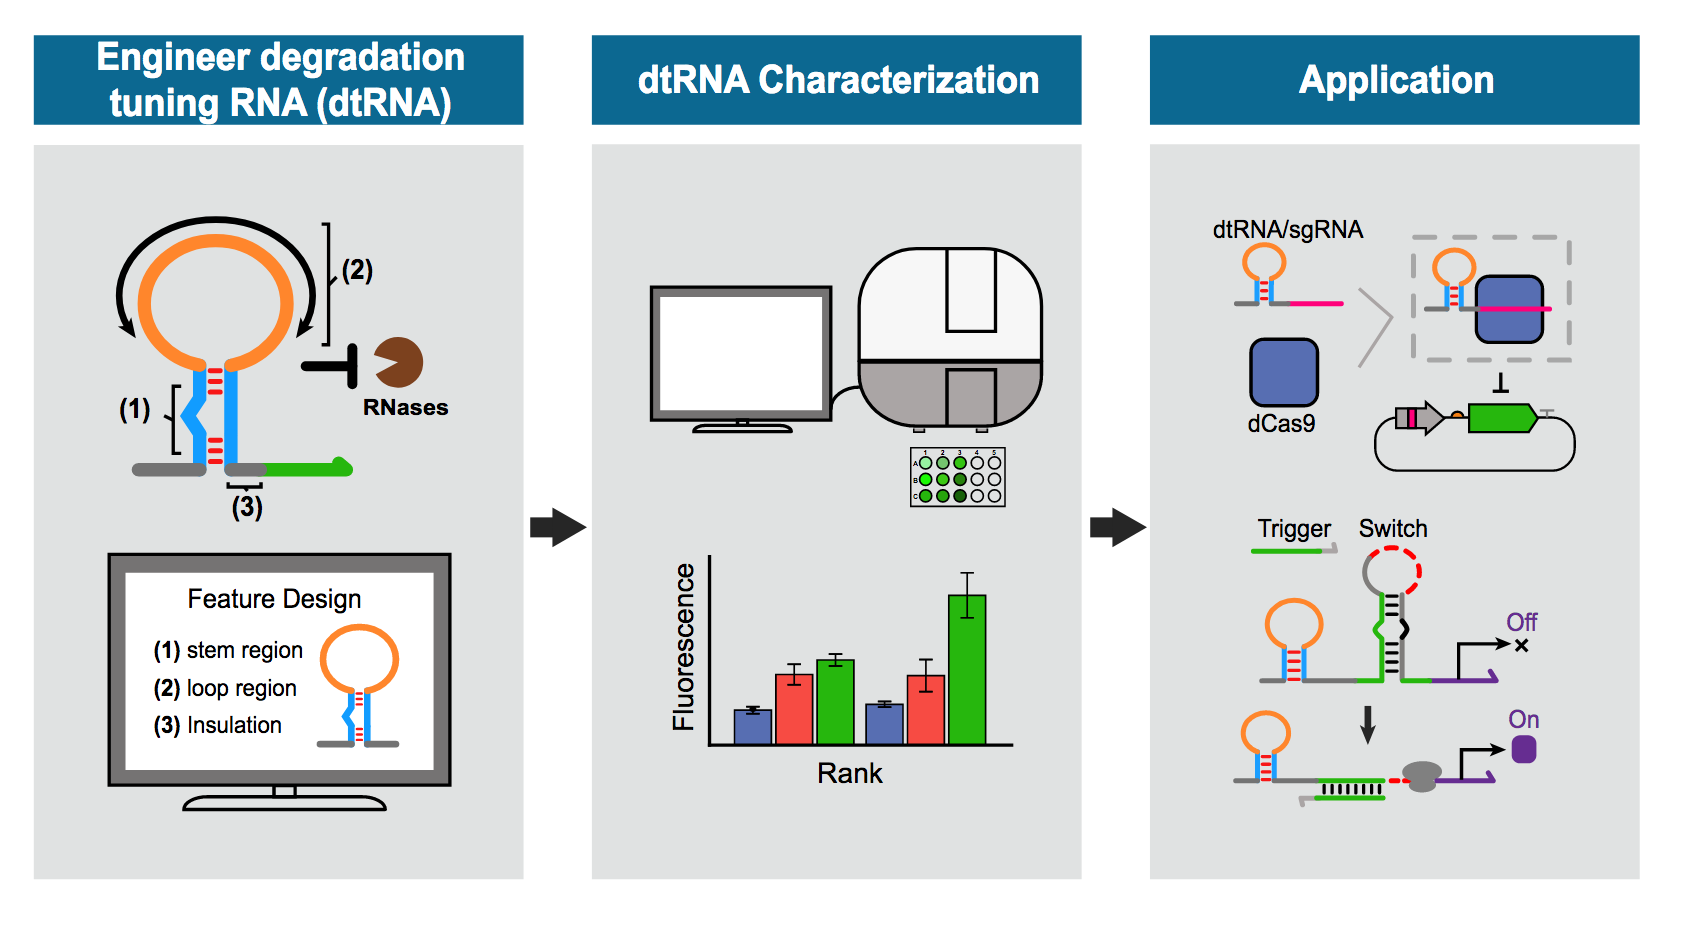 illustration shows the engineering of degradation tuning RNAs from Xiao Wang